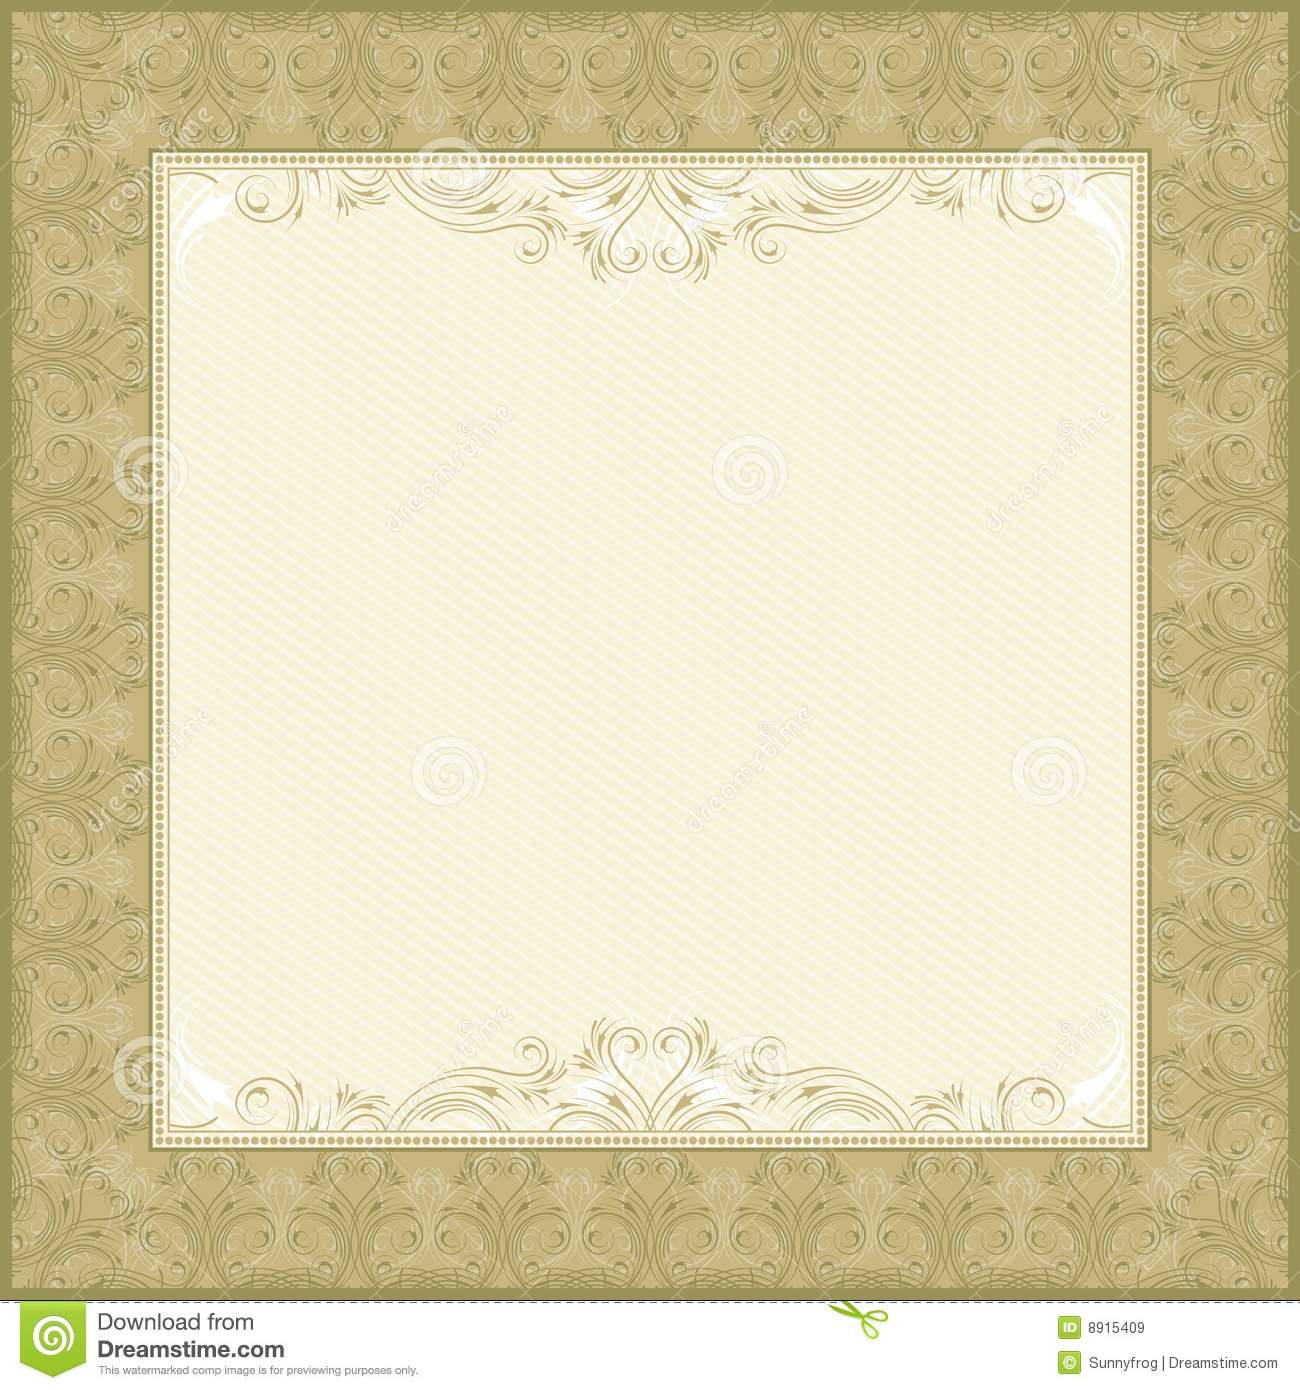 More similar stock images of ` Square certificate background, vector `